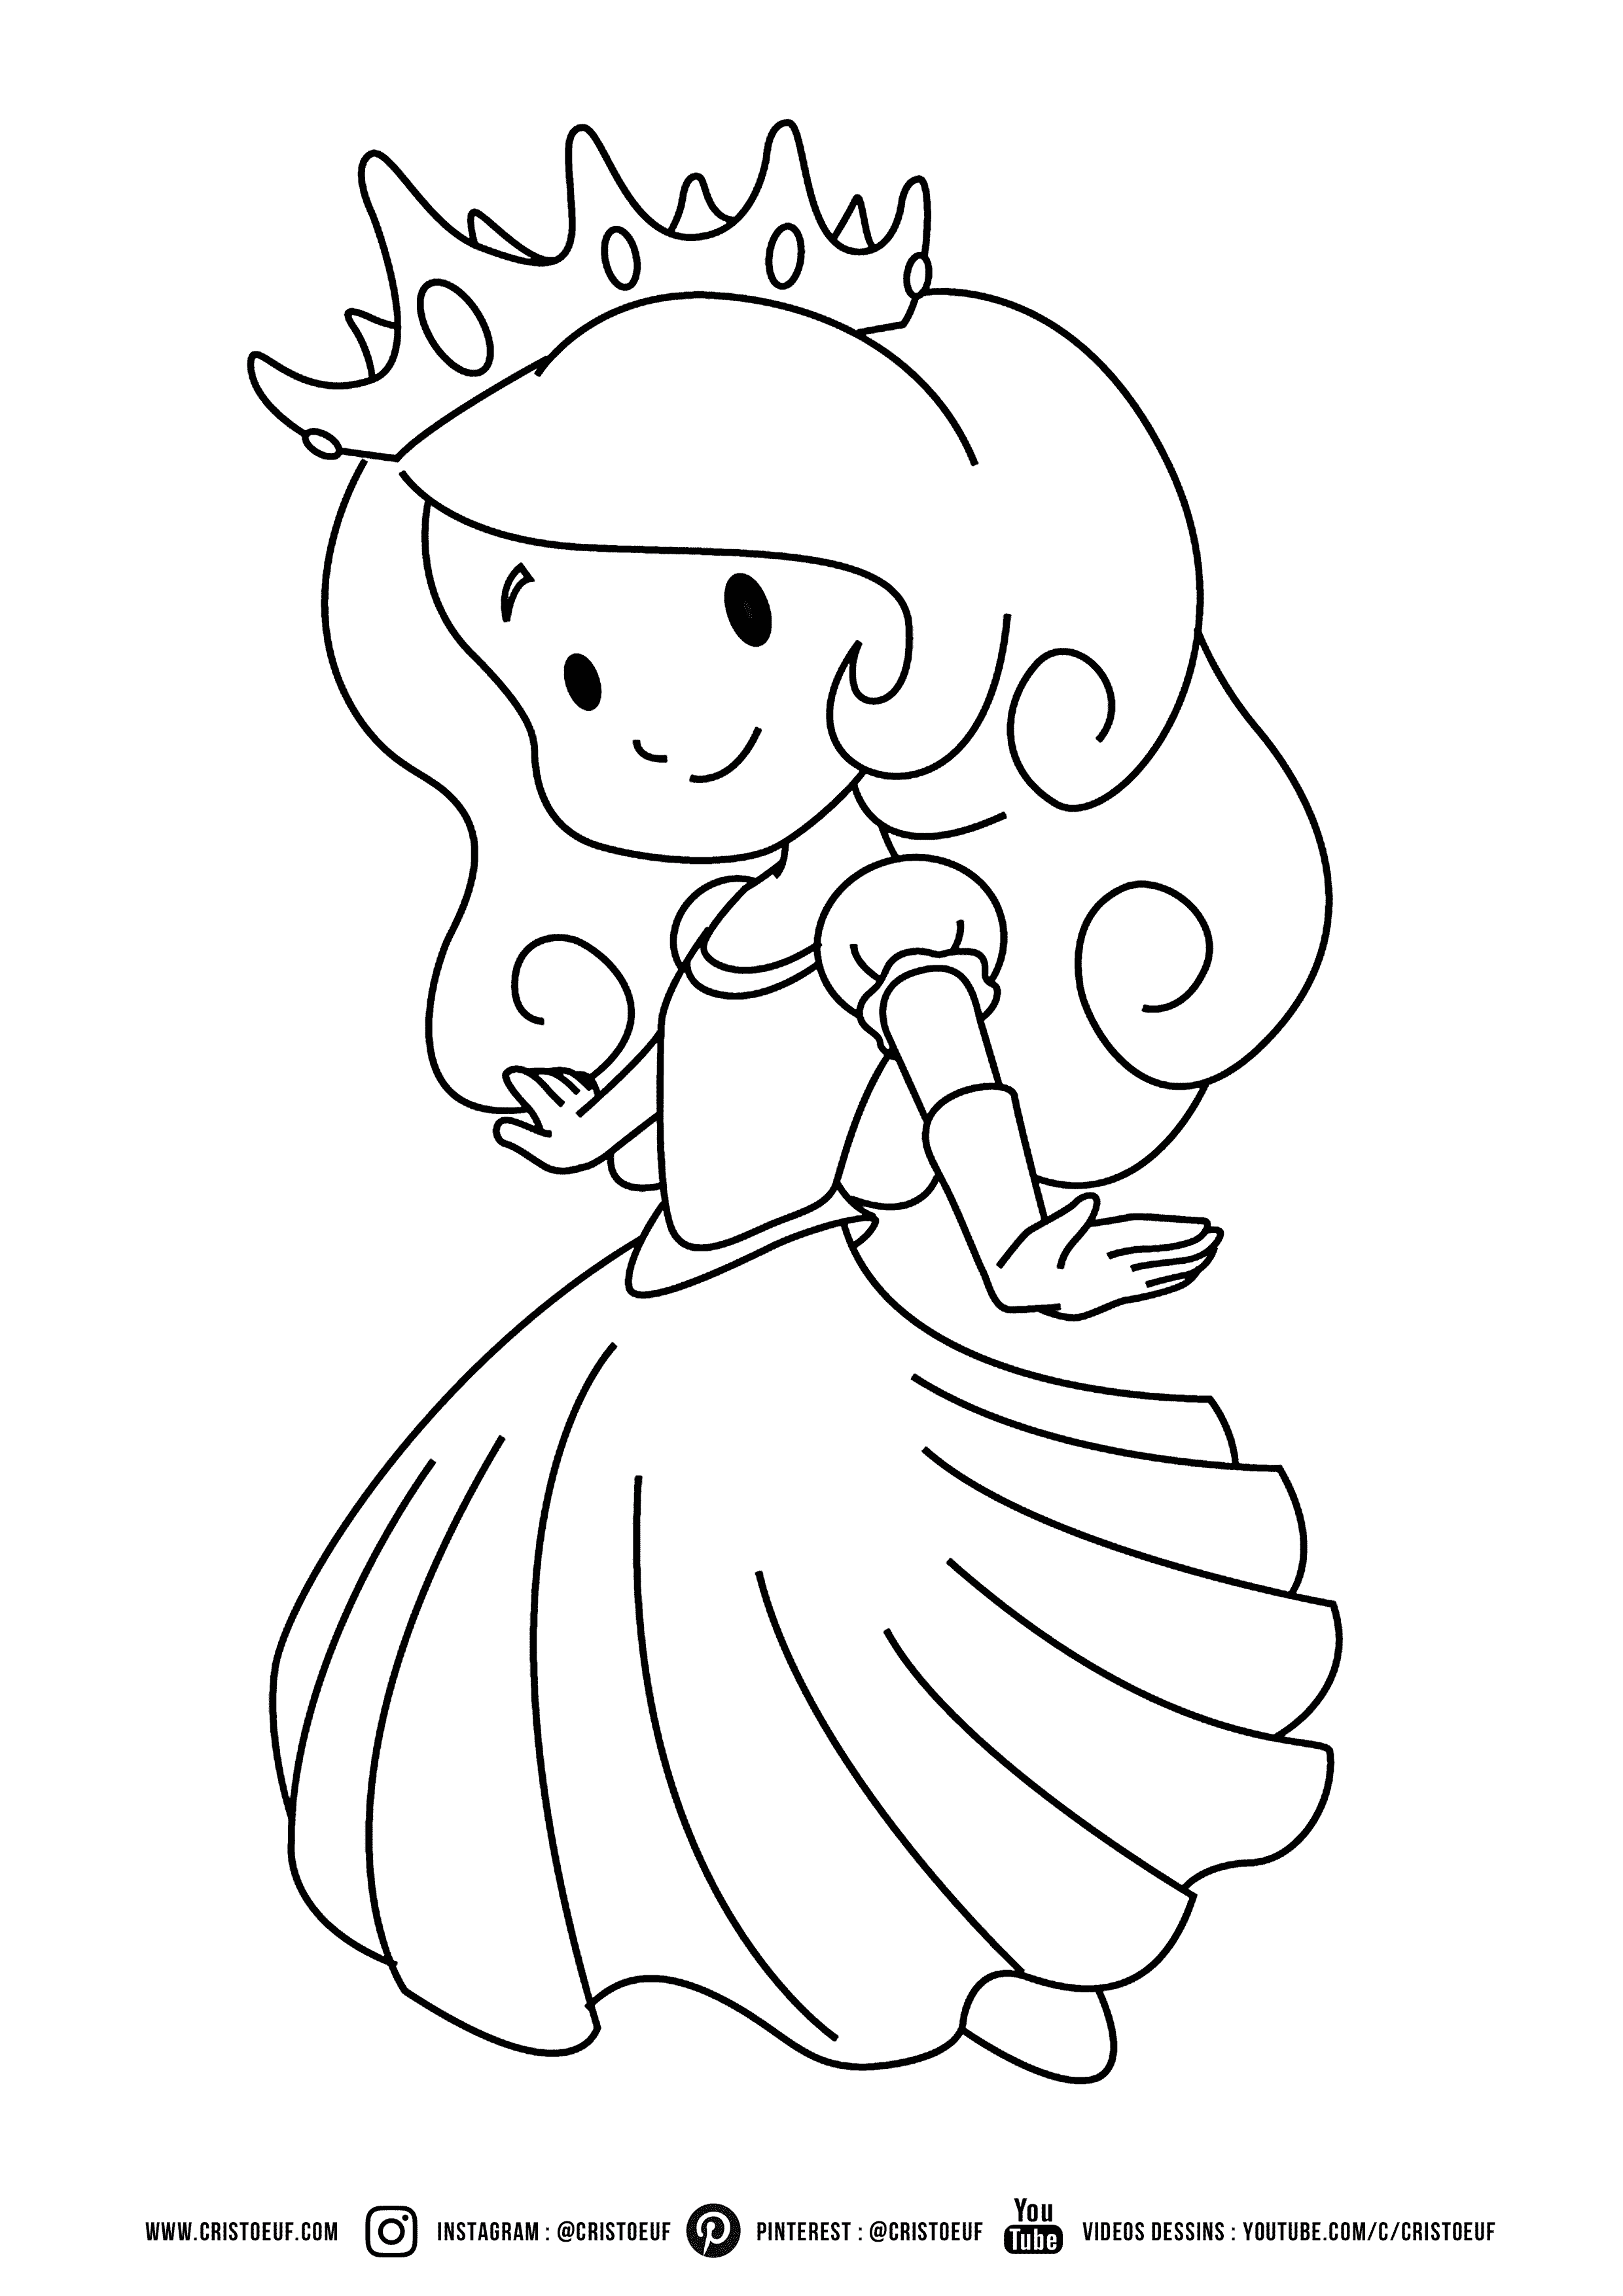 Colouring for Kids - Little Princess  Princess coloring pages